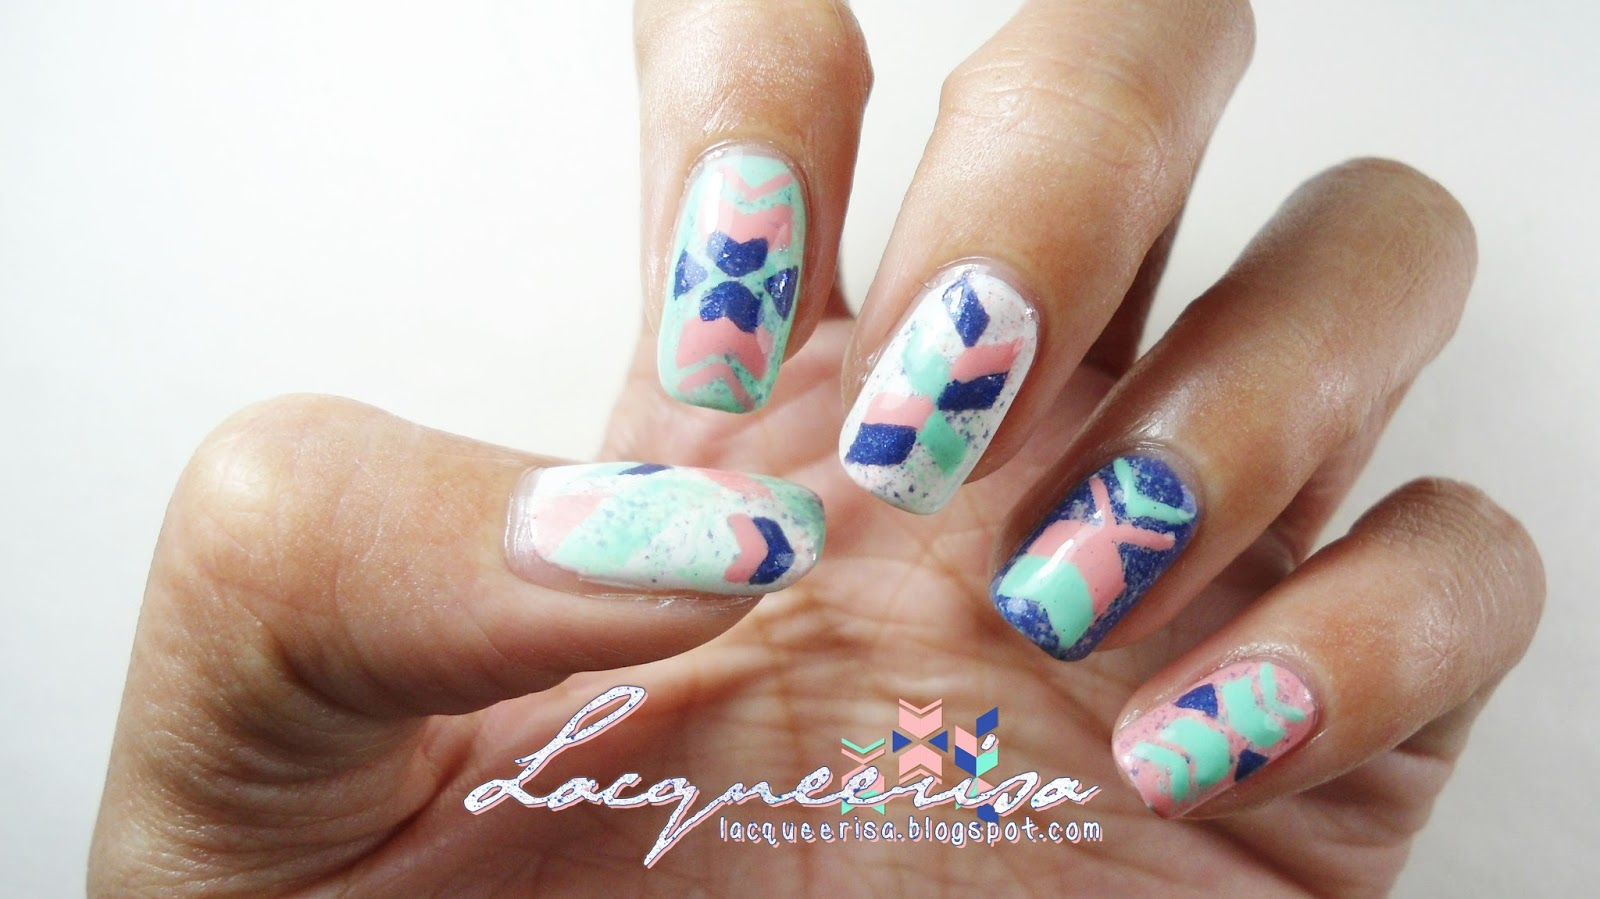 piCture pOlish Blog Fest 2013: Pattern of Arrows by Lacqueerisa